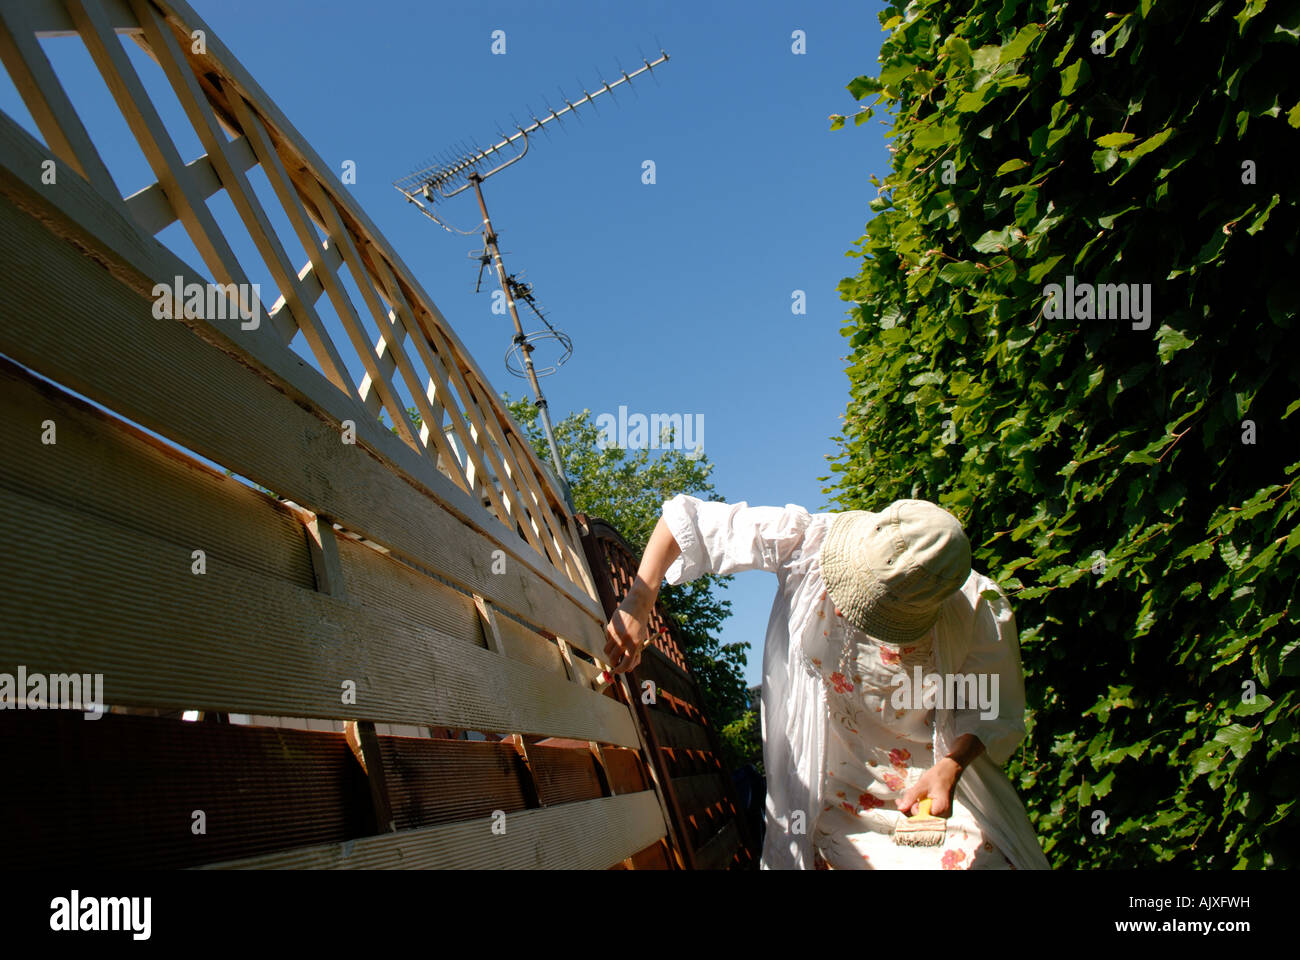 PAINTING THE FENCE - Stock Image